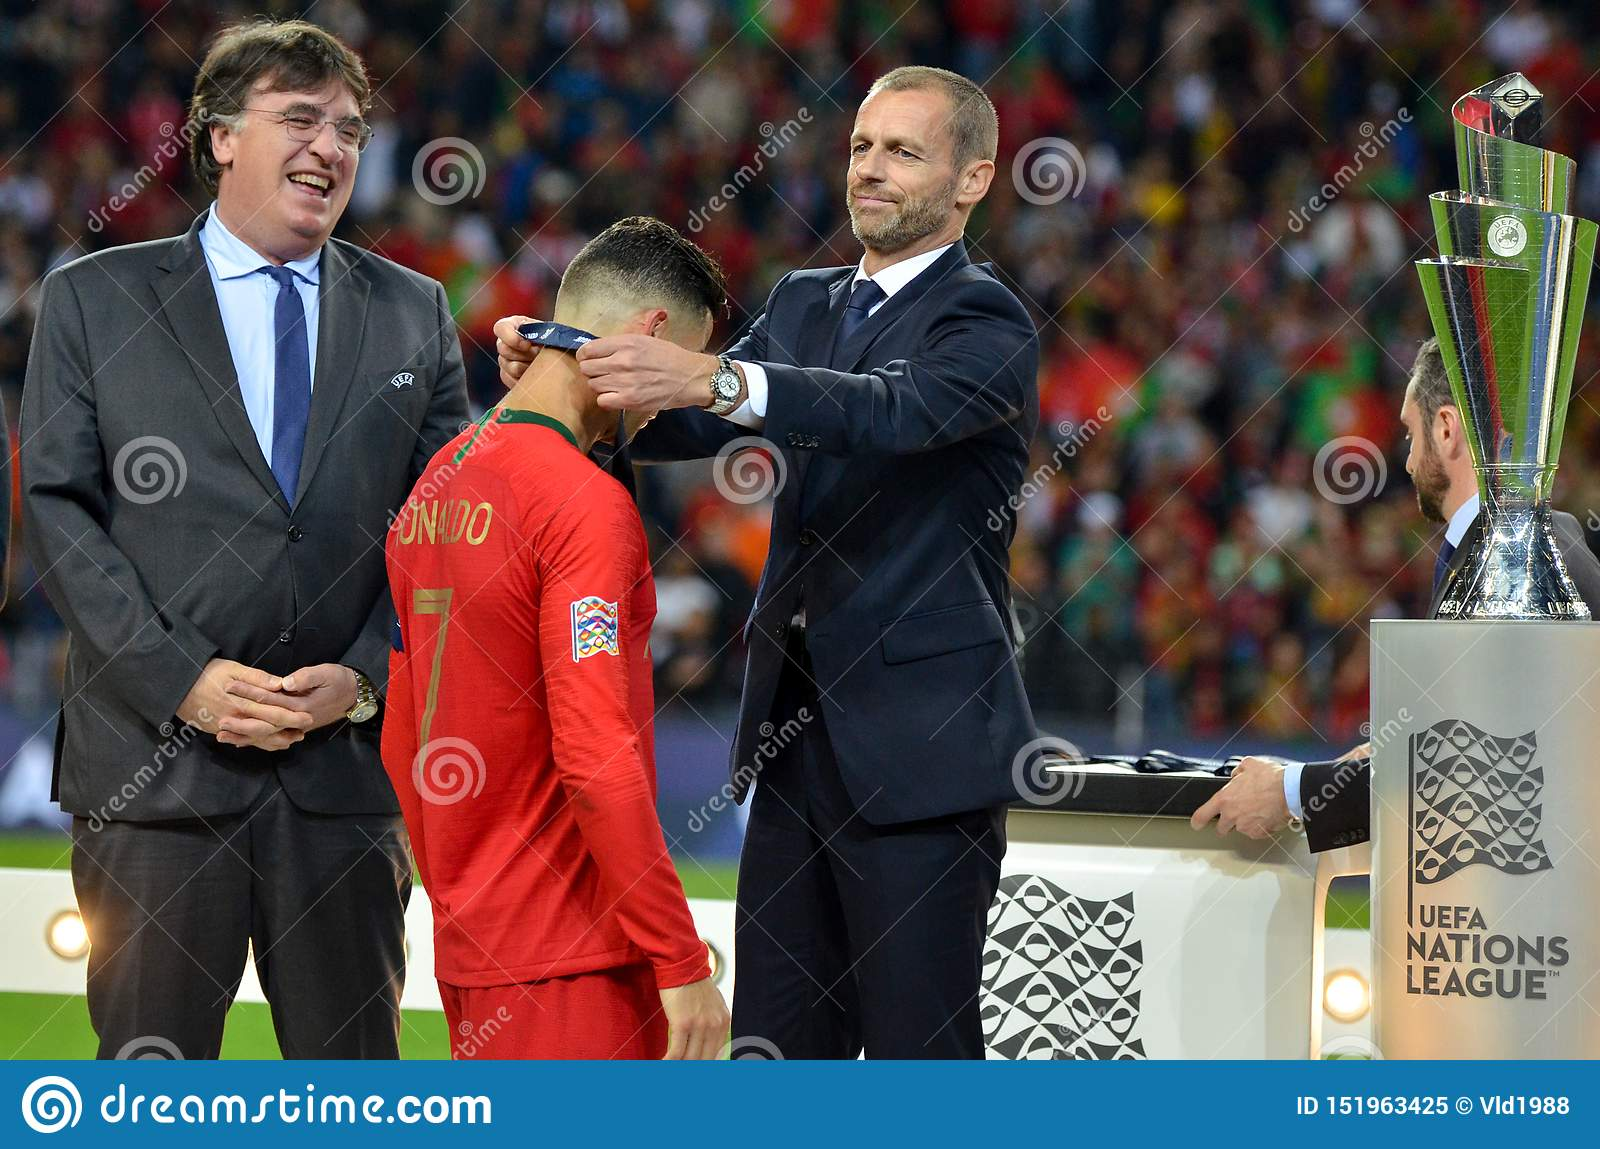 Porto Portuglal June 09 2019 Cristiano Ronaldo Receive Gold Medals During The Uefa Nations League Finals Match Between Editorial Image Image Of Football Alexander 151963425